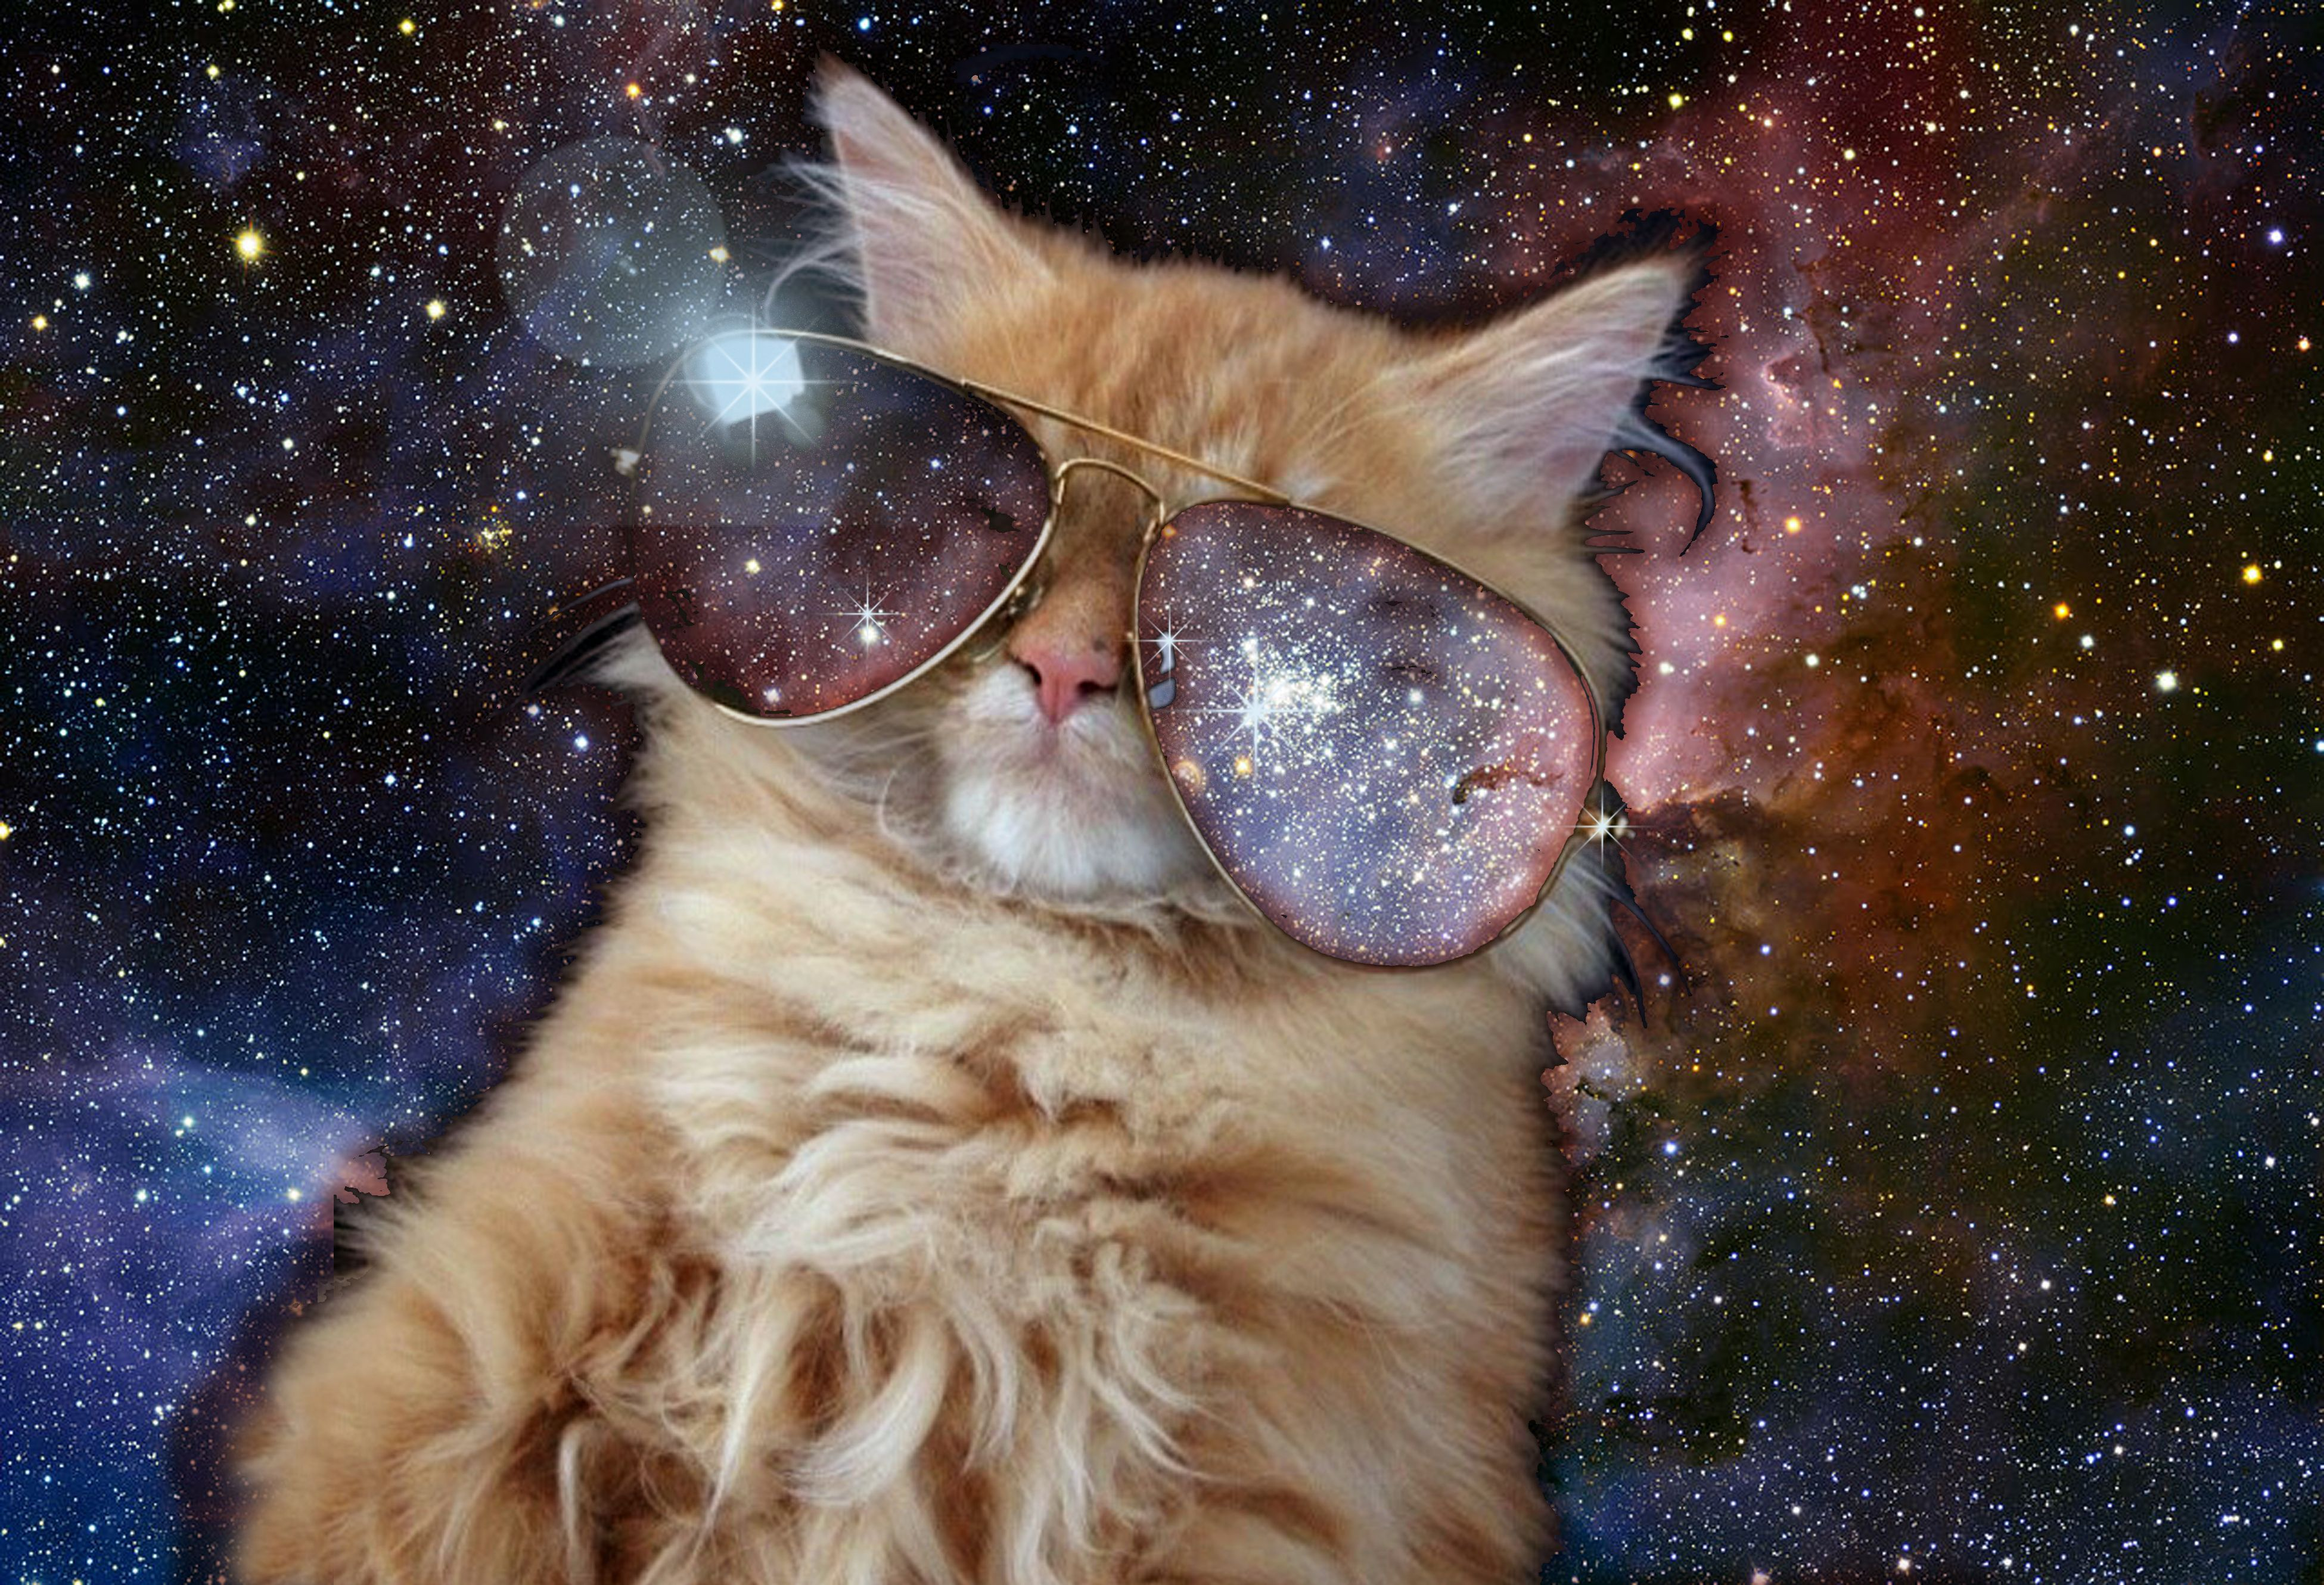 The 'Cat in Carina' I made a few years ago for r/spacecats 3900  2660.